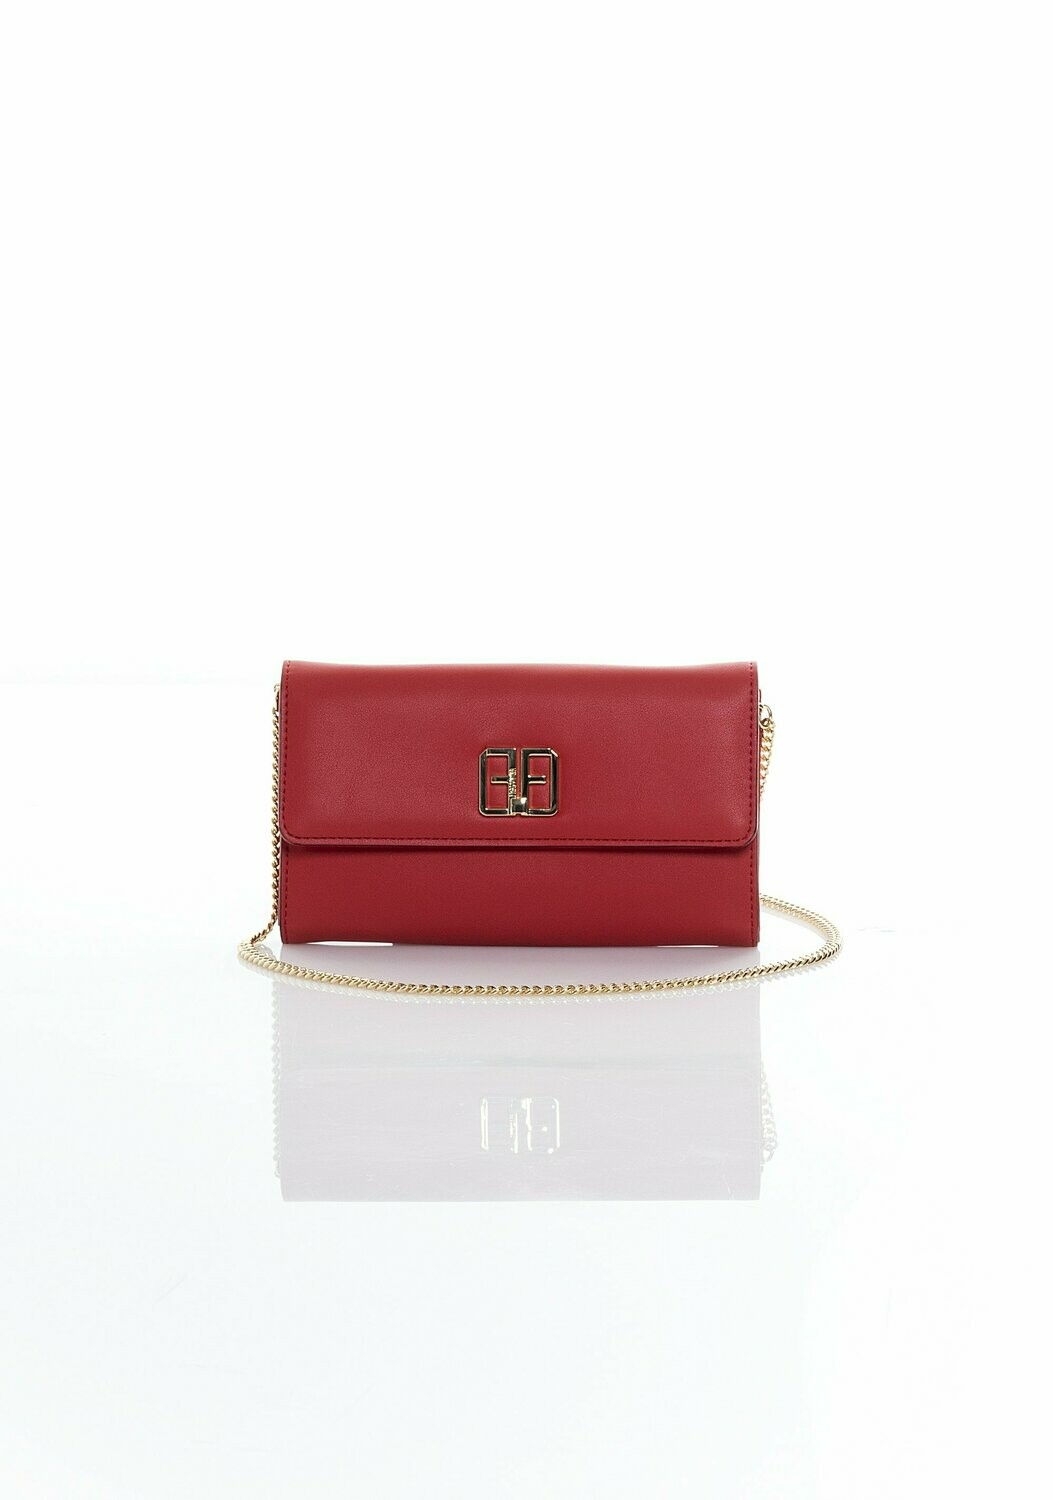 Eco leather wallet with chain